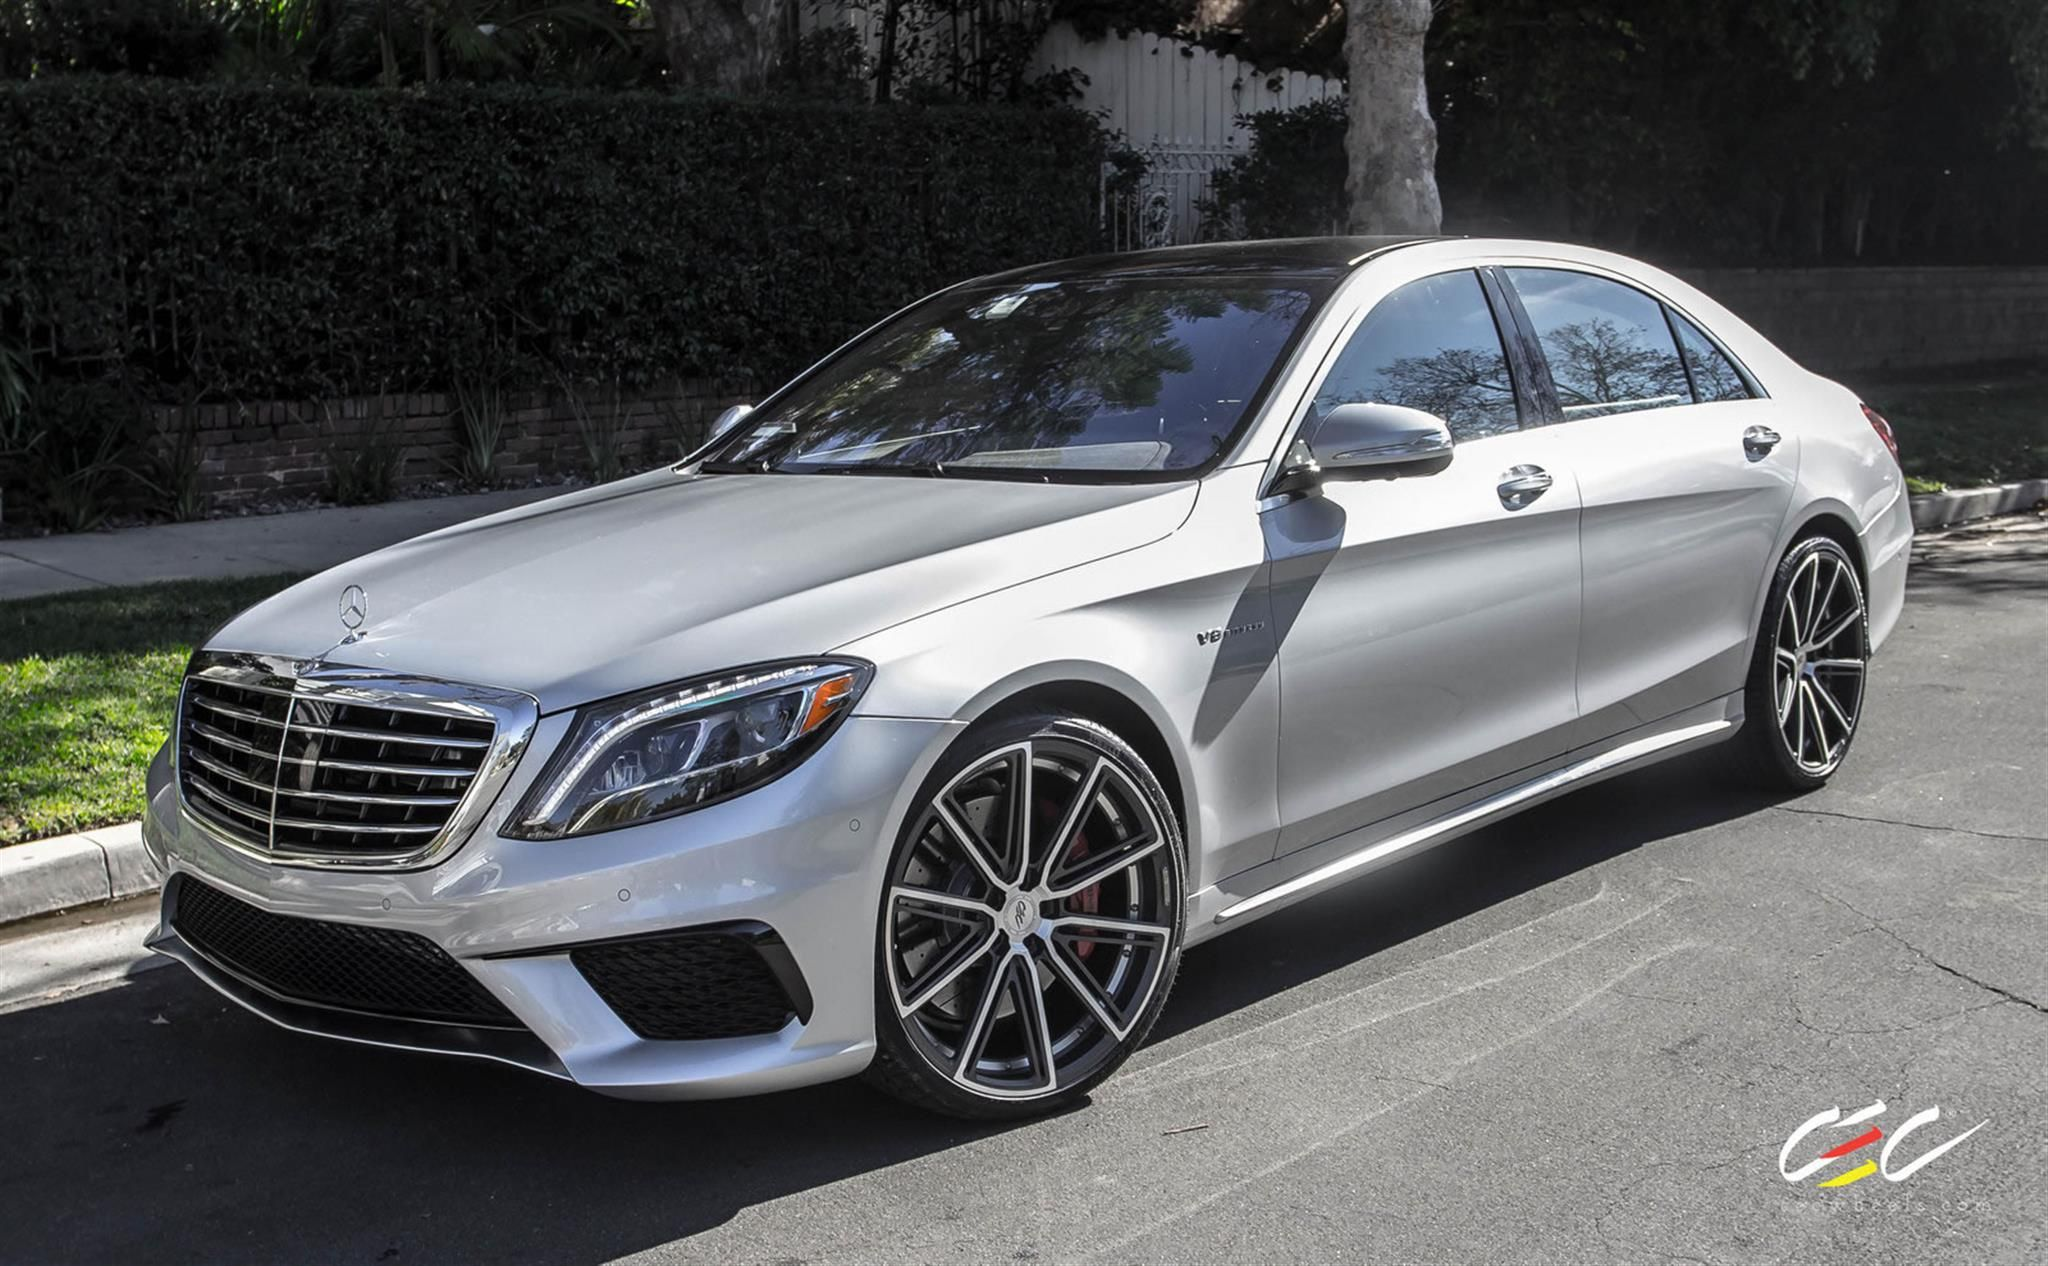 Color car los angeles - Mercedes Benz S63 Amg With 22 Cec C25 Wheels By Cec In Los Angeles